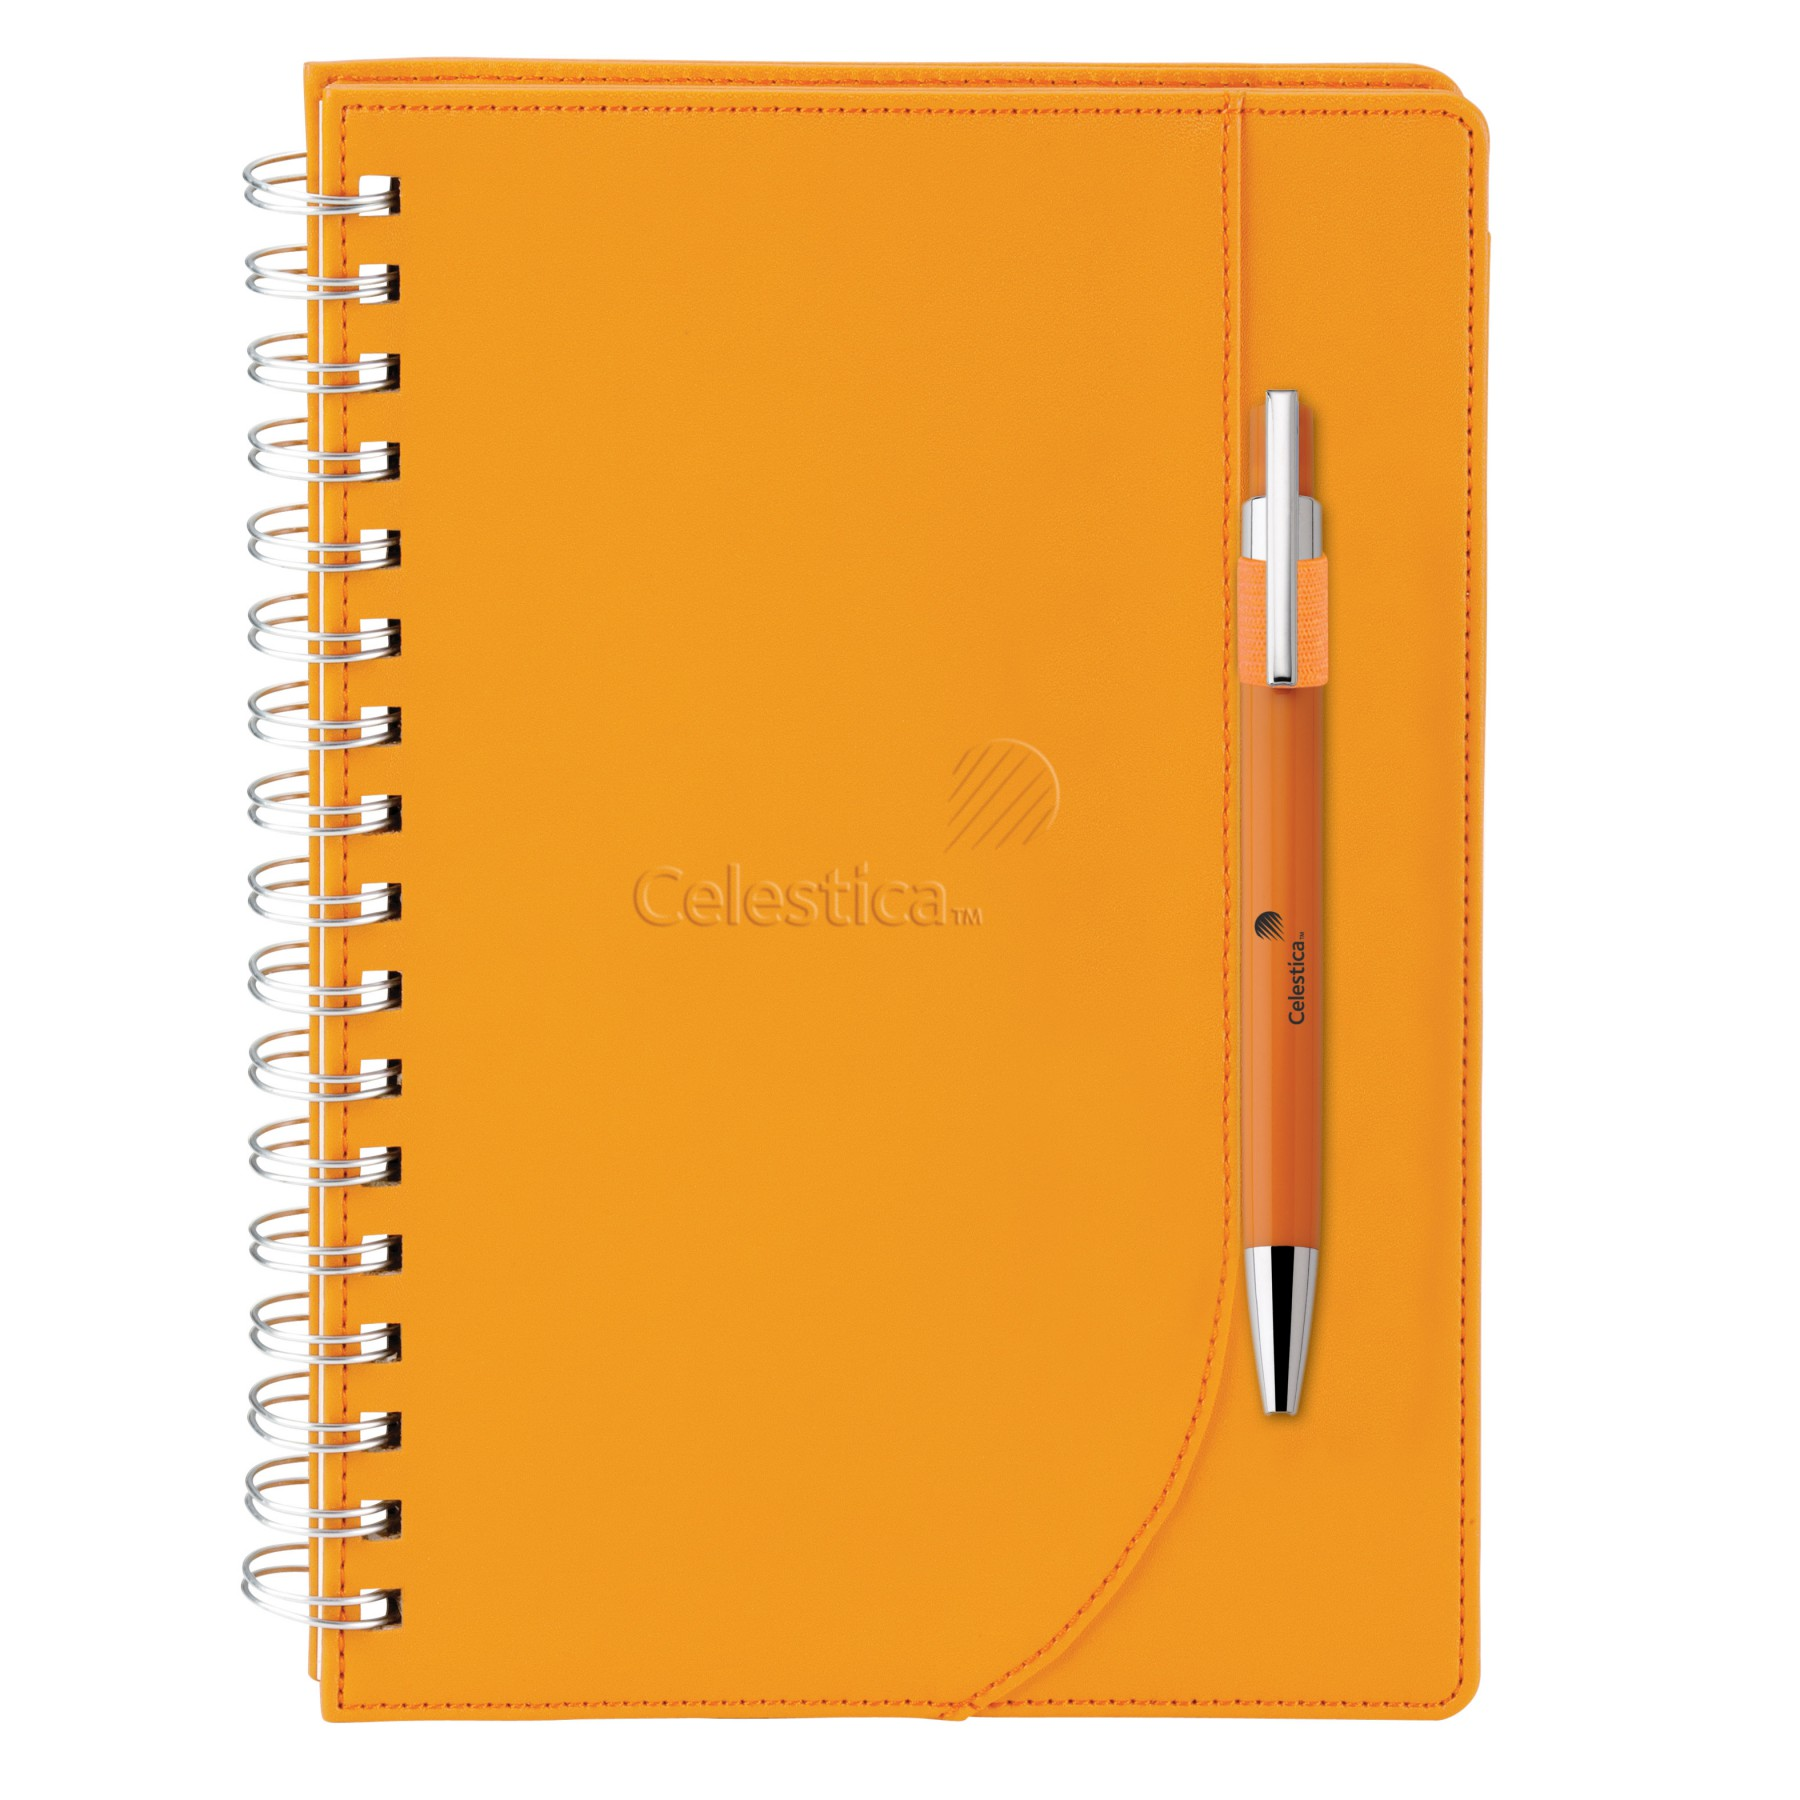 NEOSKIN; JOURNAL COMBO, ST4127, One Colour Imprint